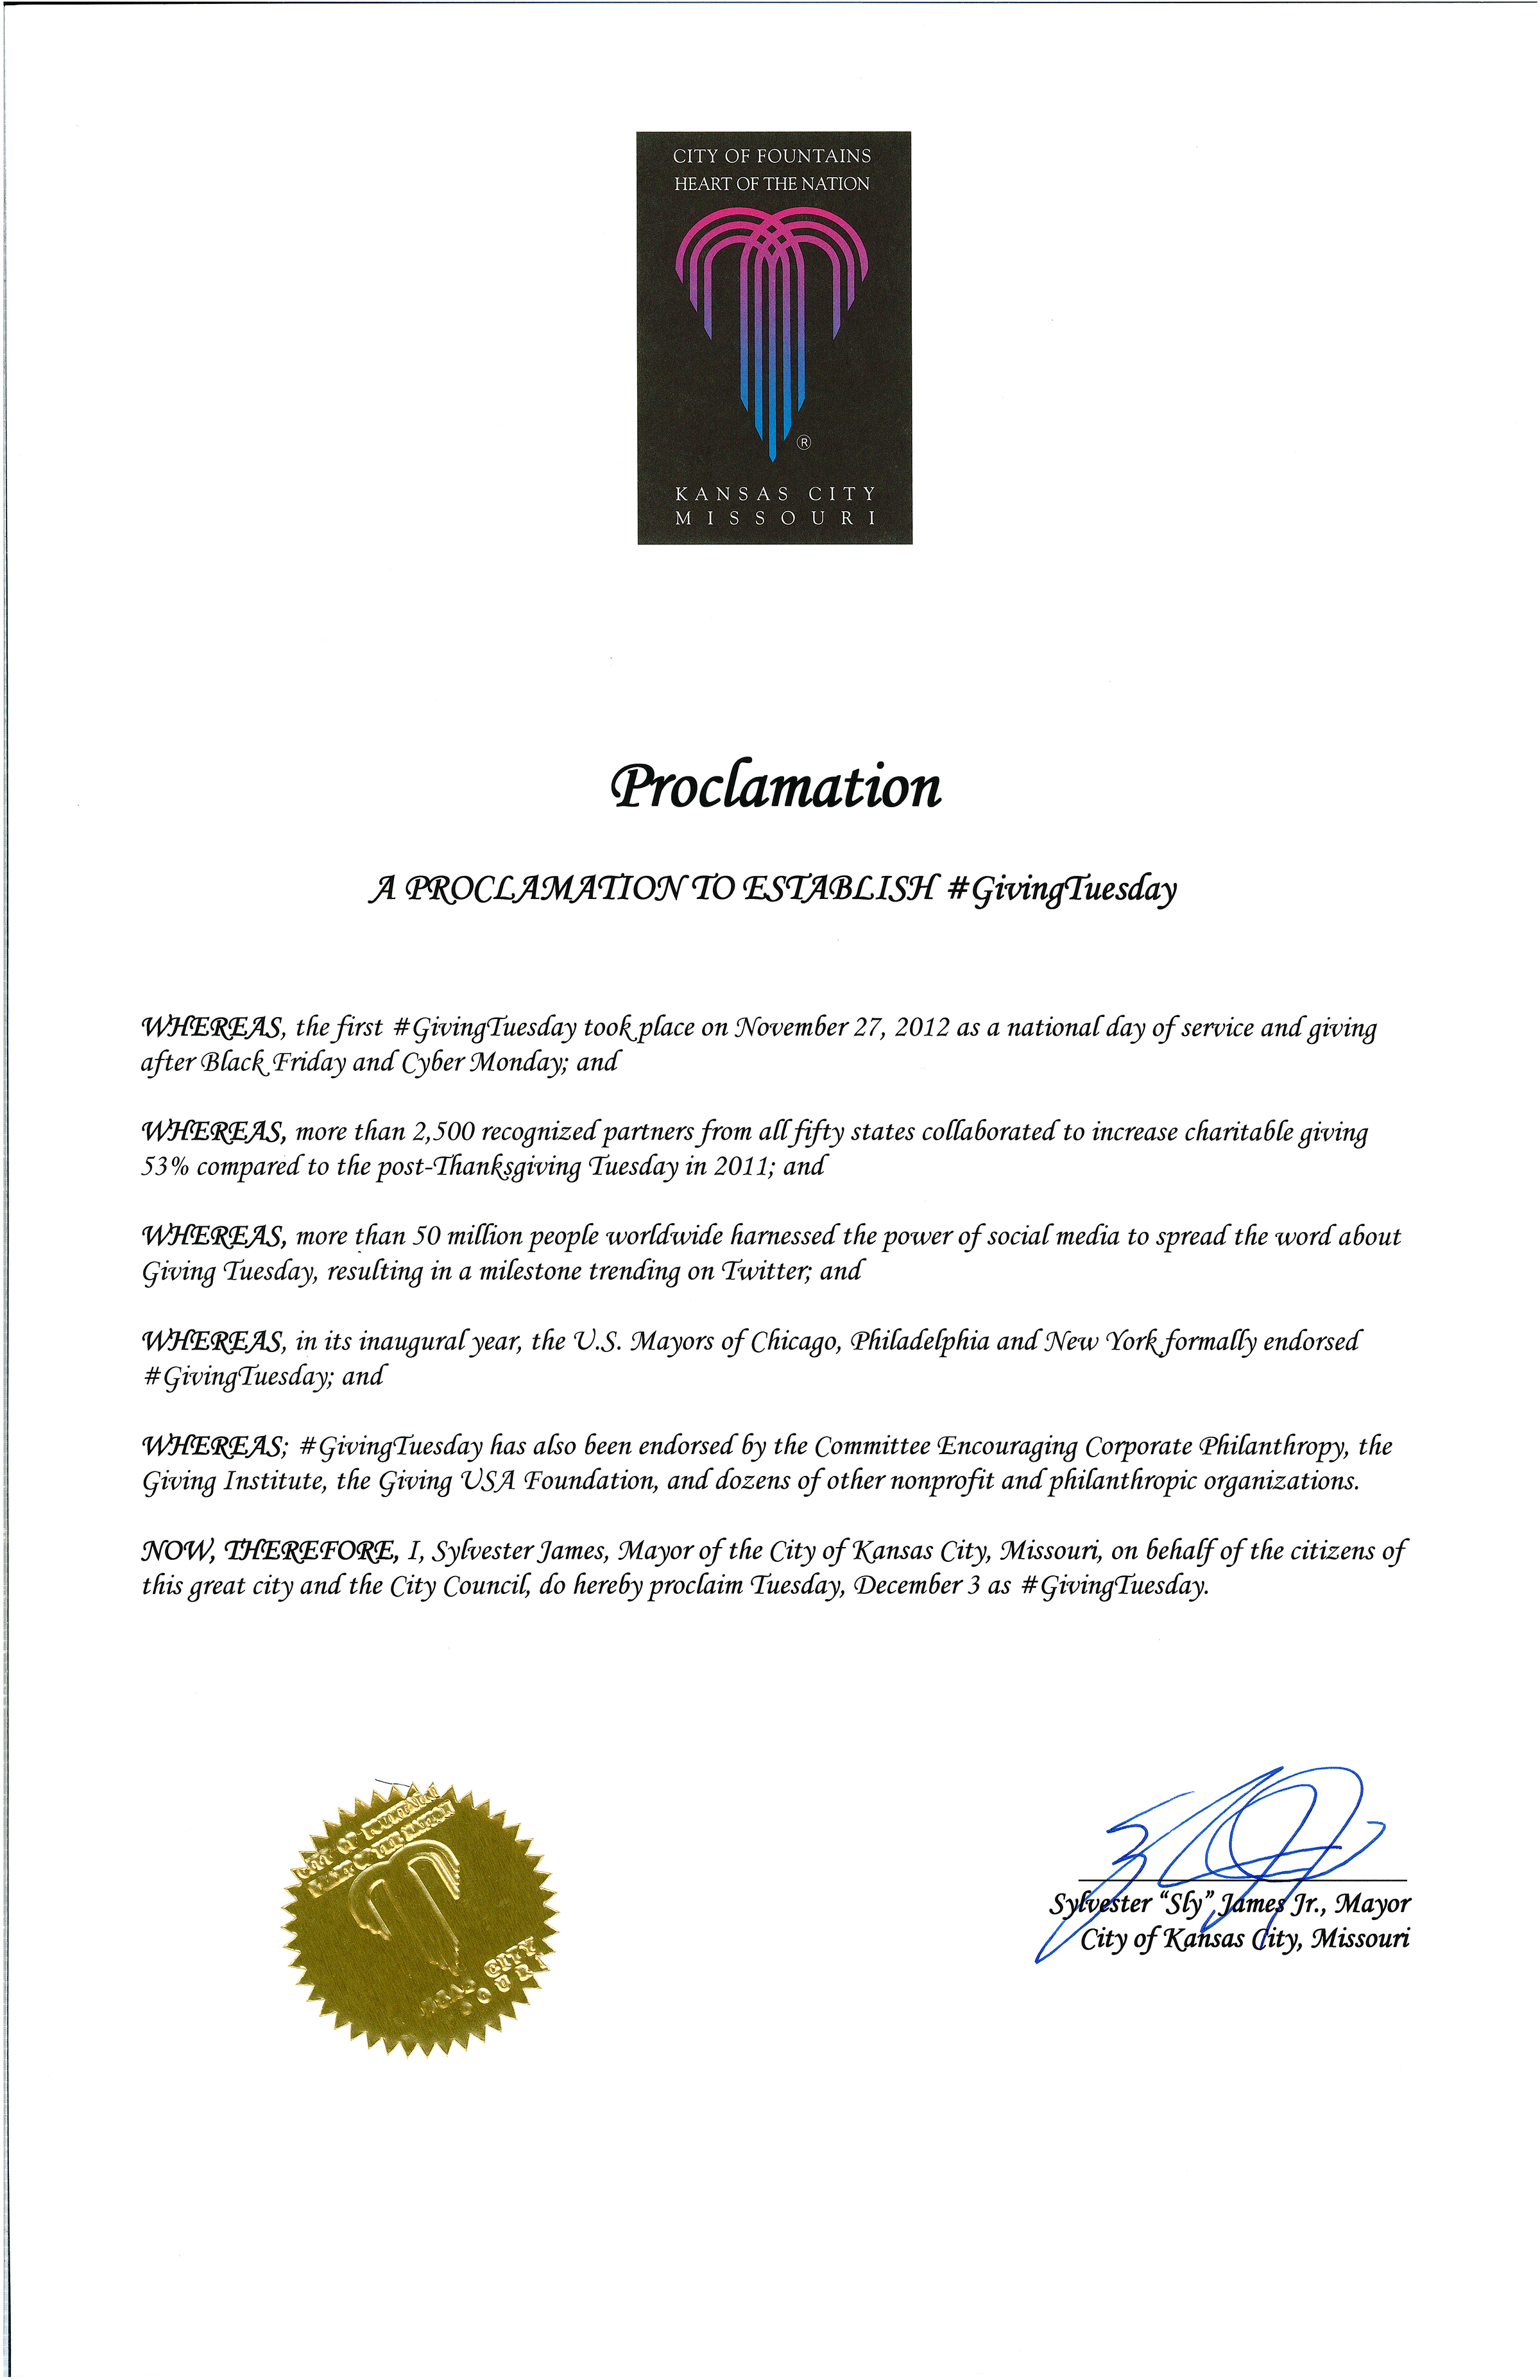 Mayoral Proclamation